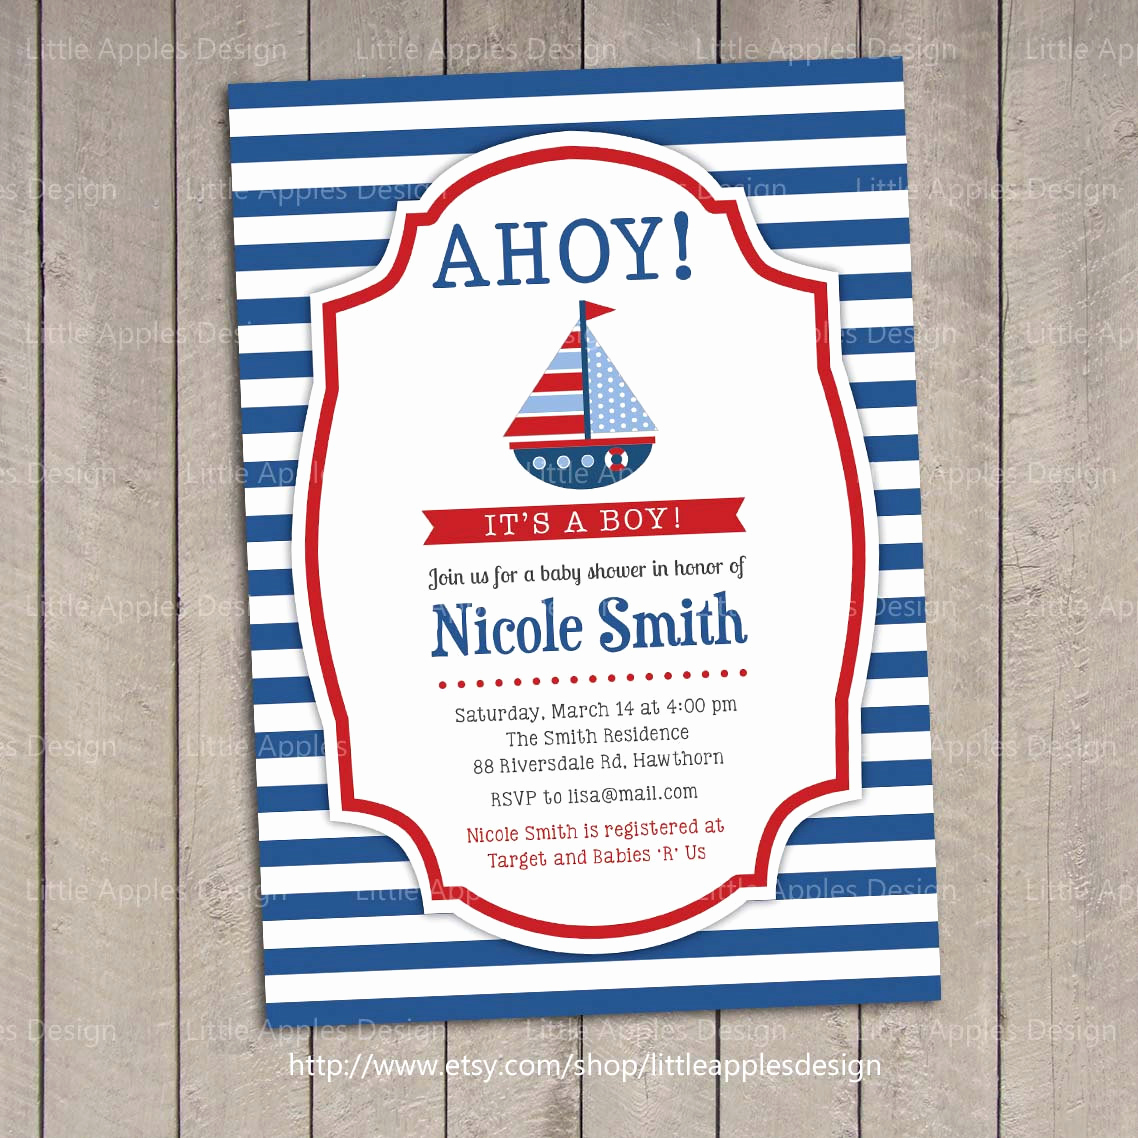 Nautical Baby Shower Invitation Templates Beautiful Nautical Invitation Nautical Baby Shower Invitation Baby